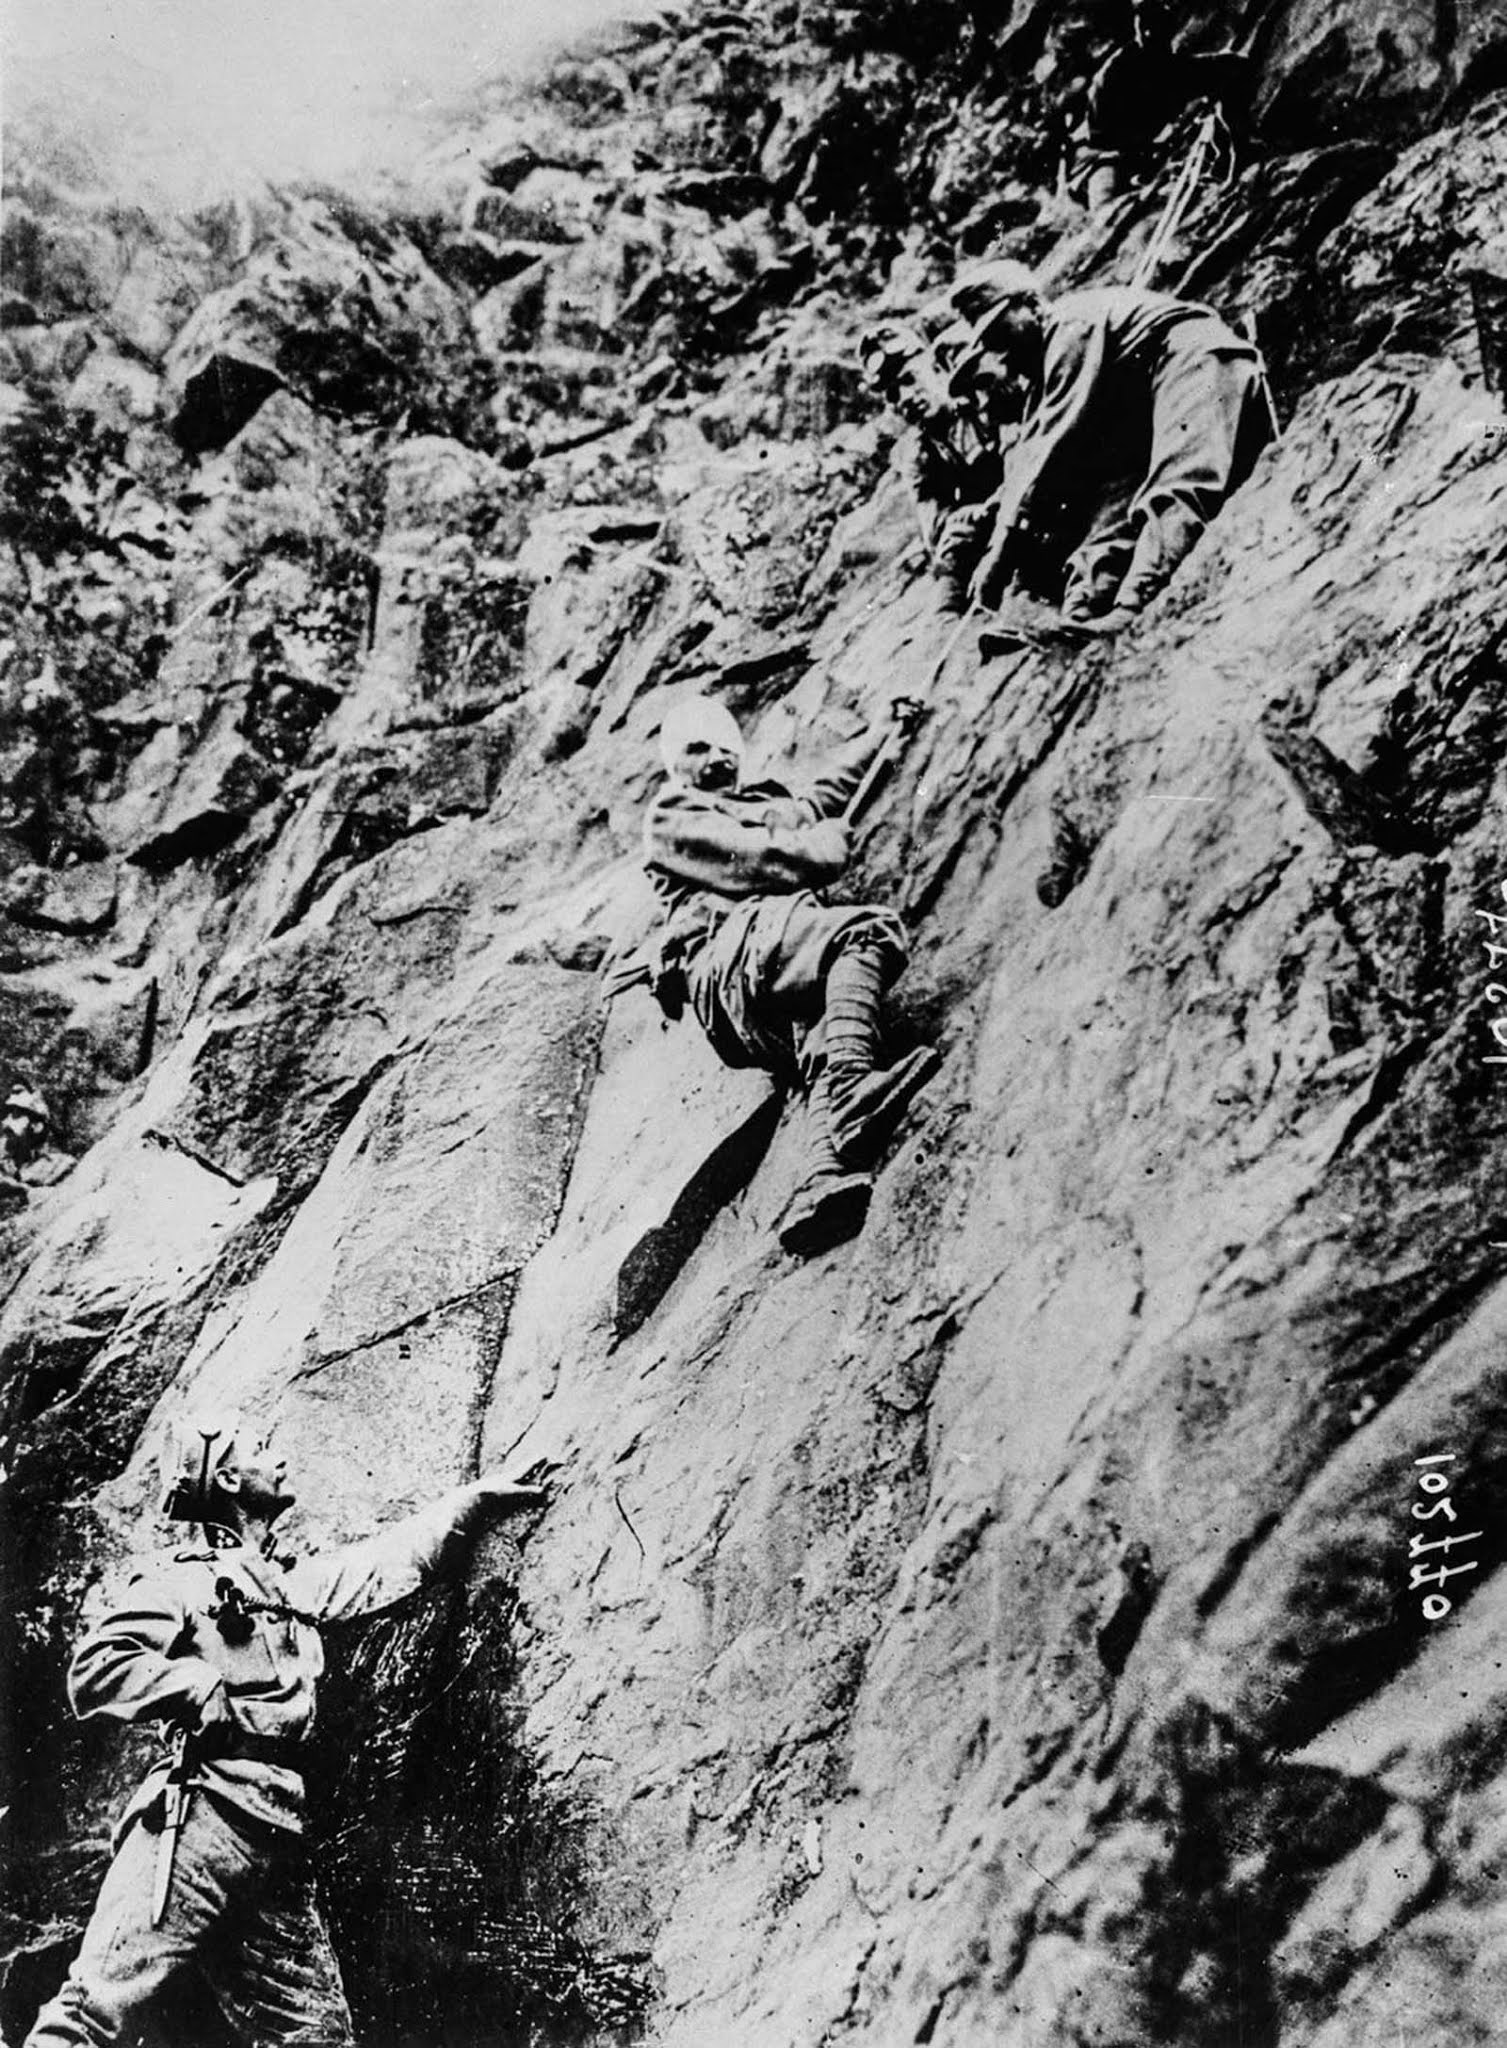 Soldiers lower a wounded comrade down a cliff. 1915.